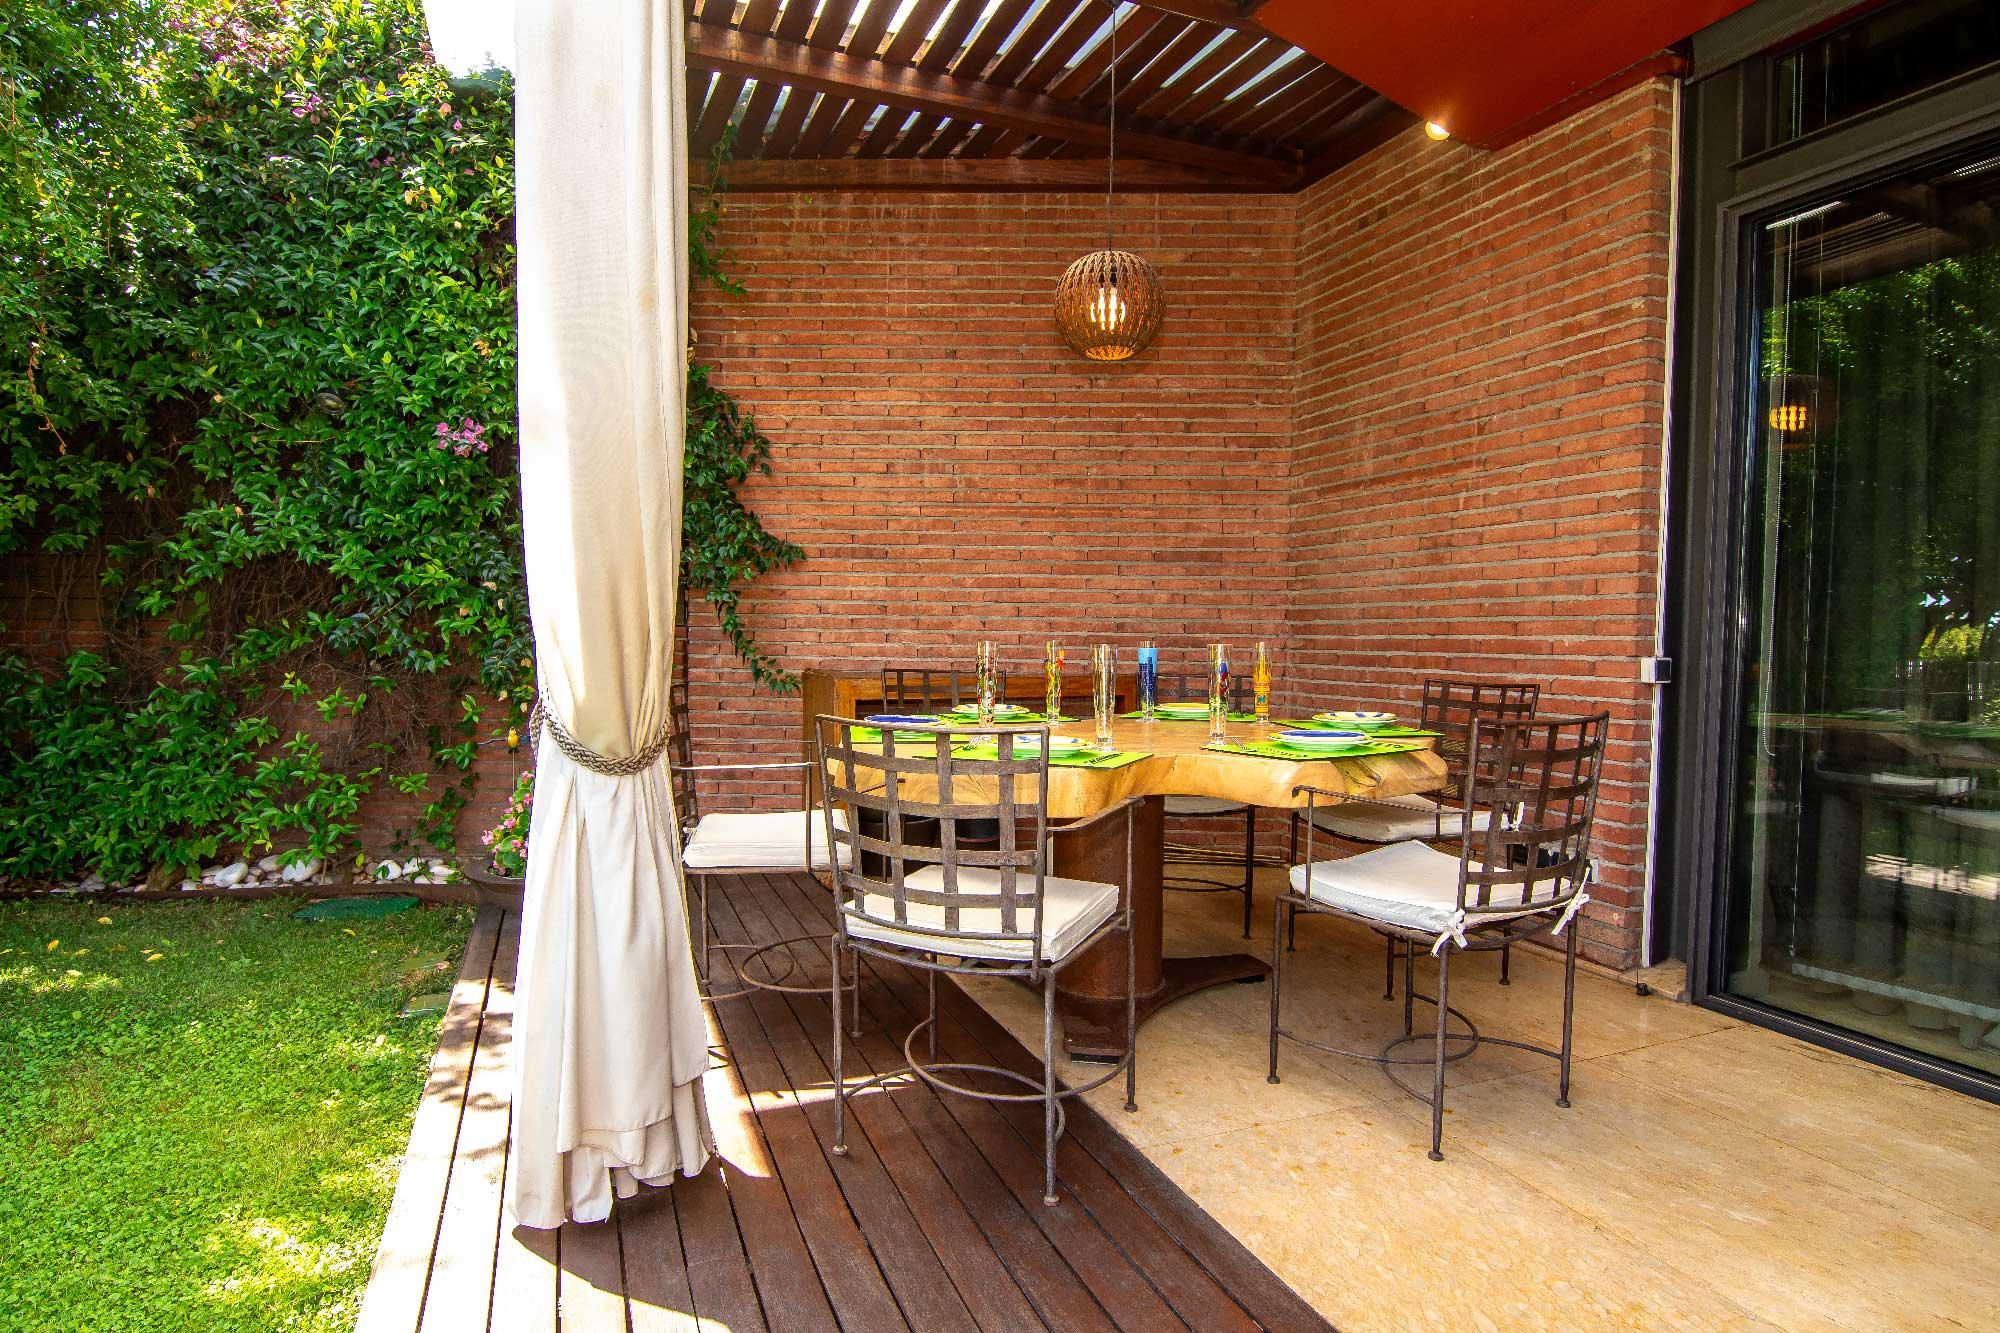 214424 House for sale in Les Corts, Pedralbes 28